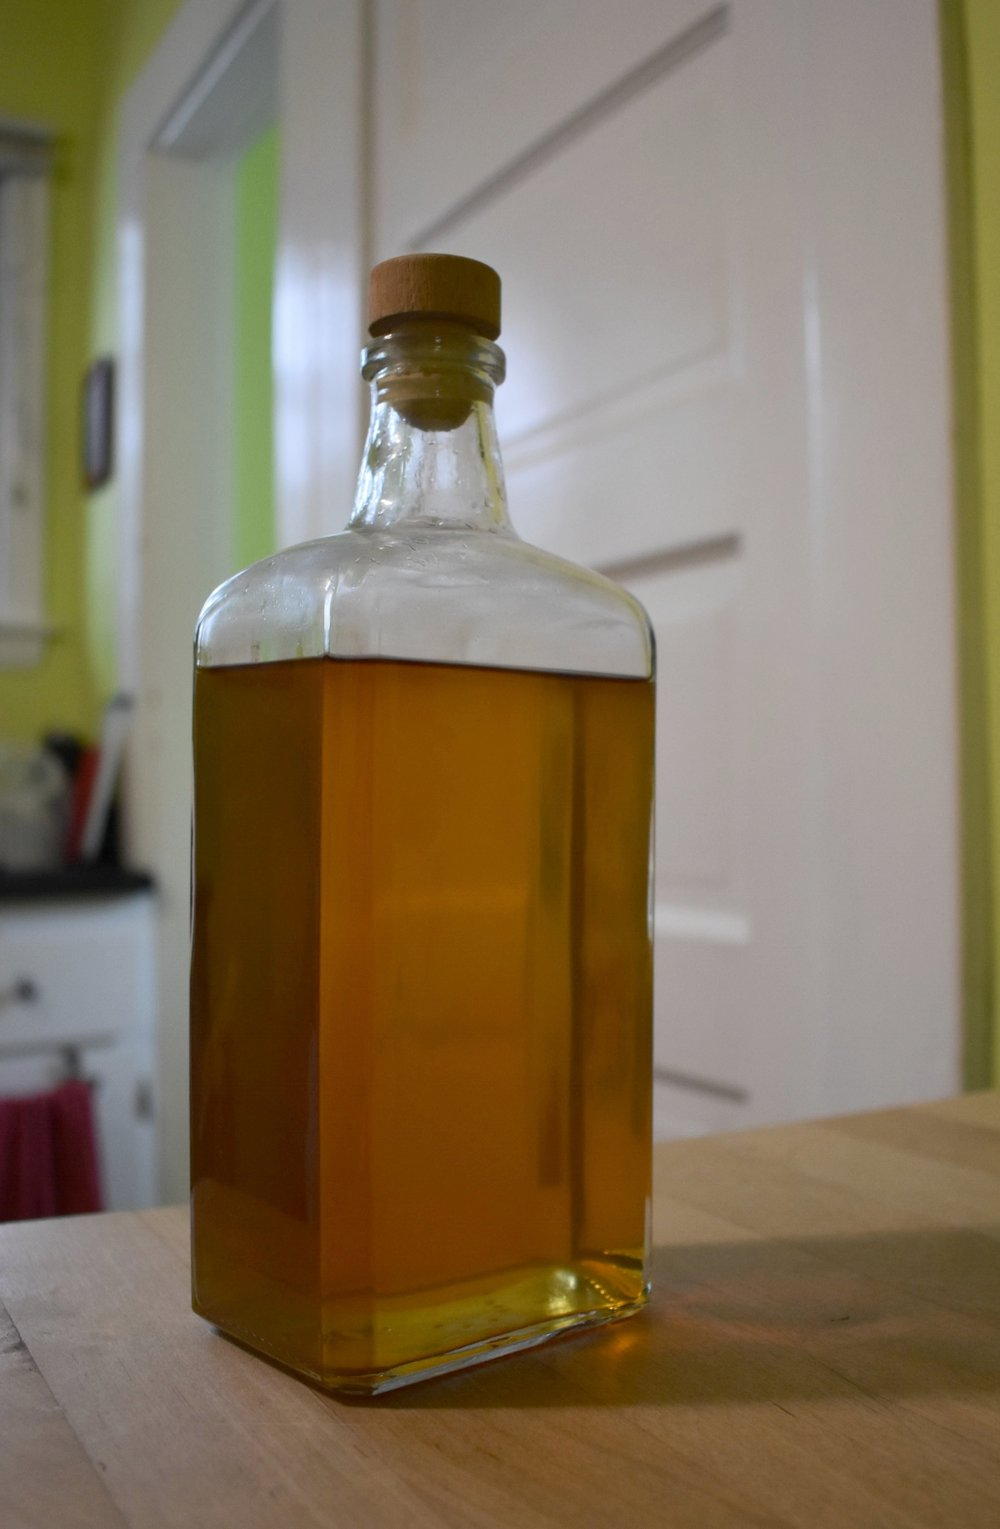 My homemade orange liqueur looks sharp in this former bottle of Mythic Gin.